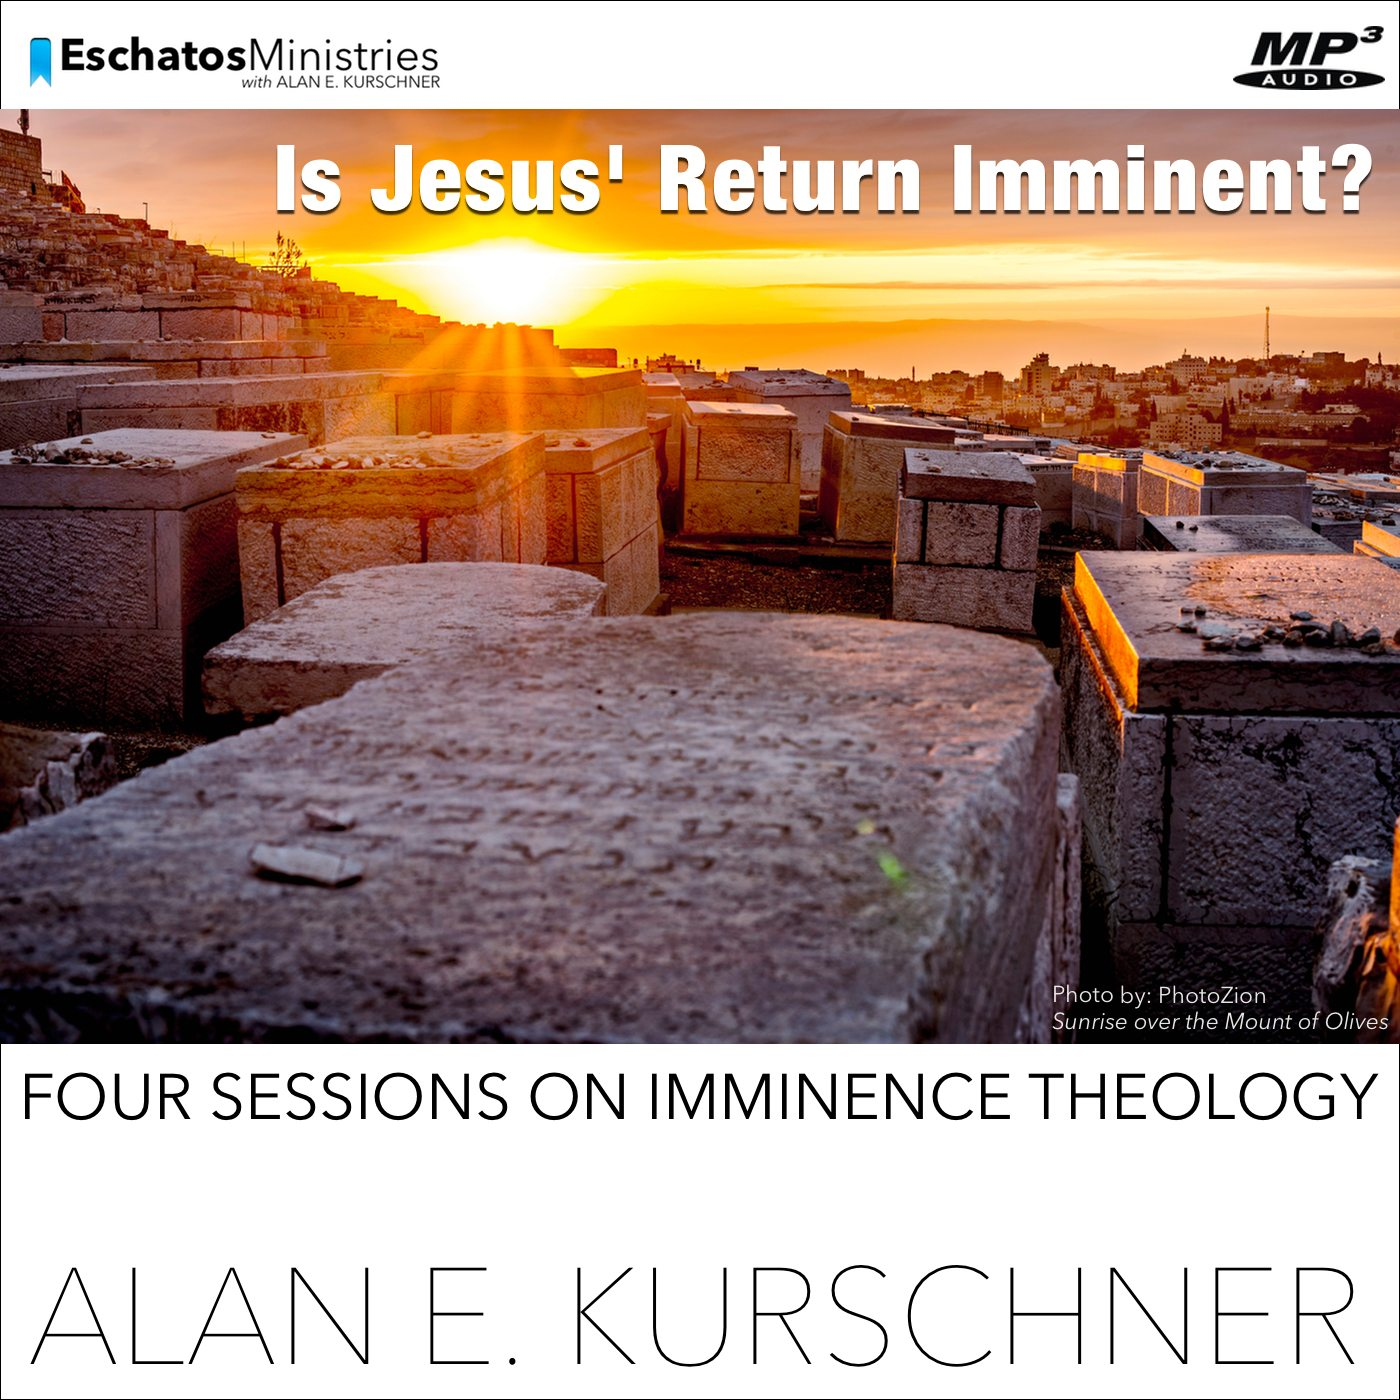 AUDIO SESSIONS AVAILABLE! Is Jesus' Return Imminent?